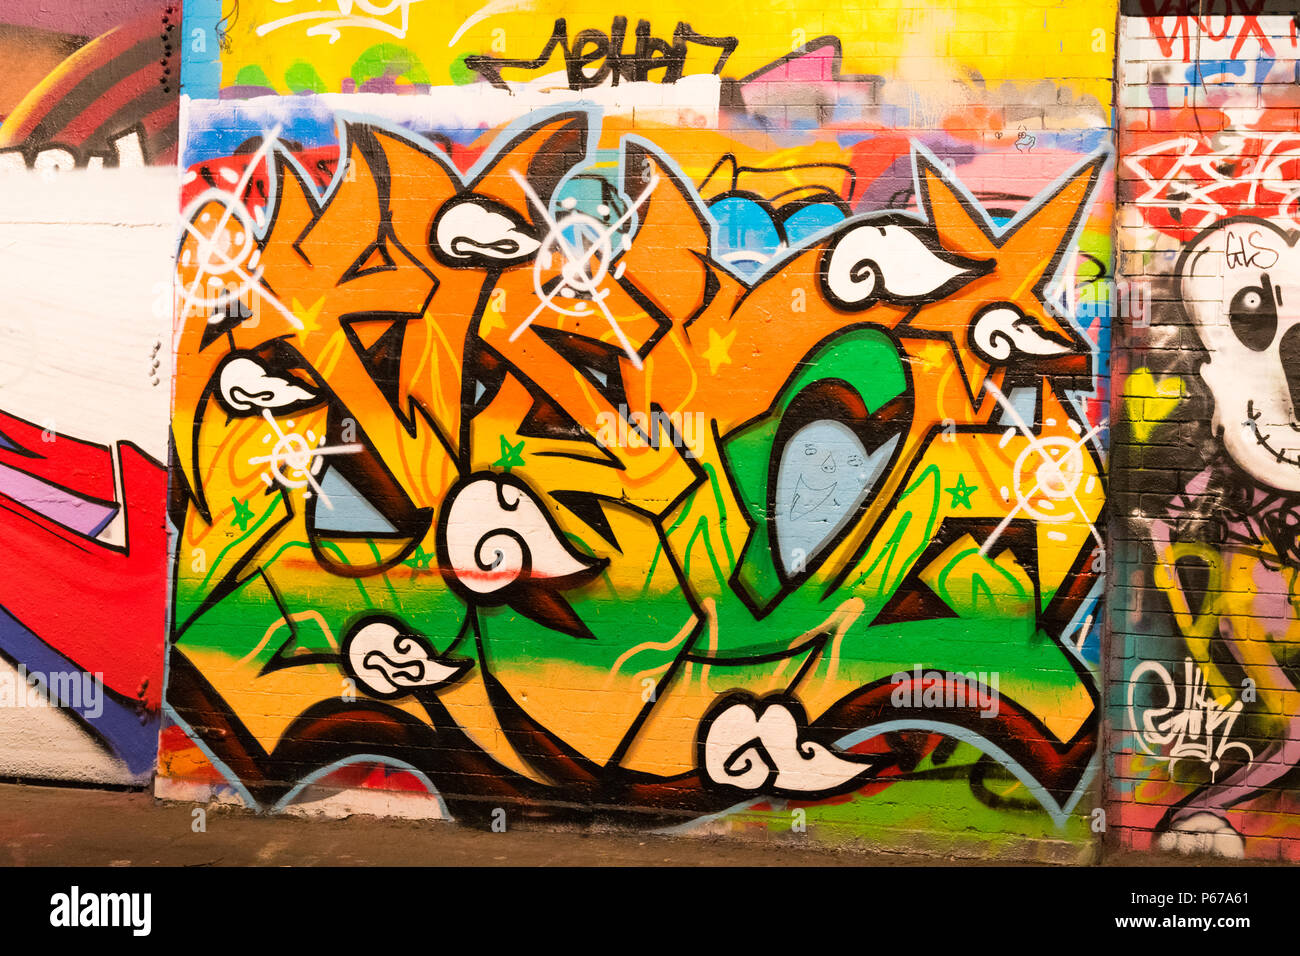 London Waterloo Leake Street orange vert jaune lettres graffiti wall script trottoir chaussée détail Photo Stock